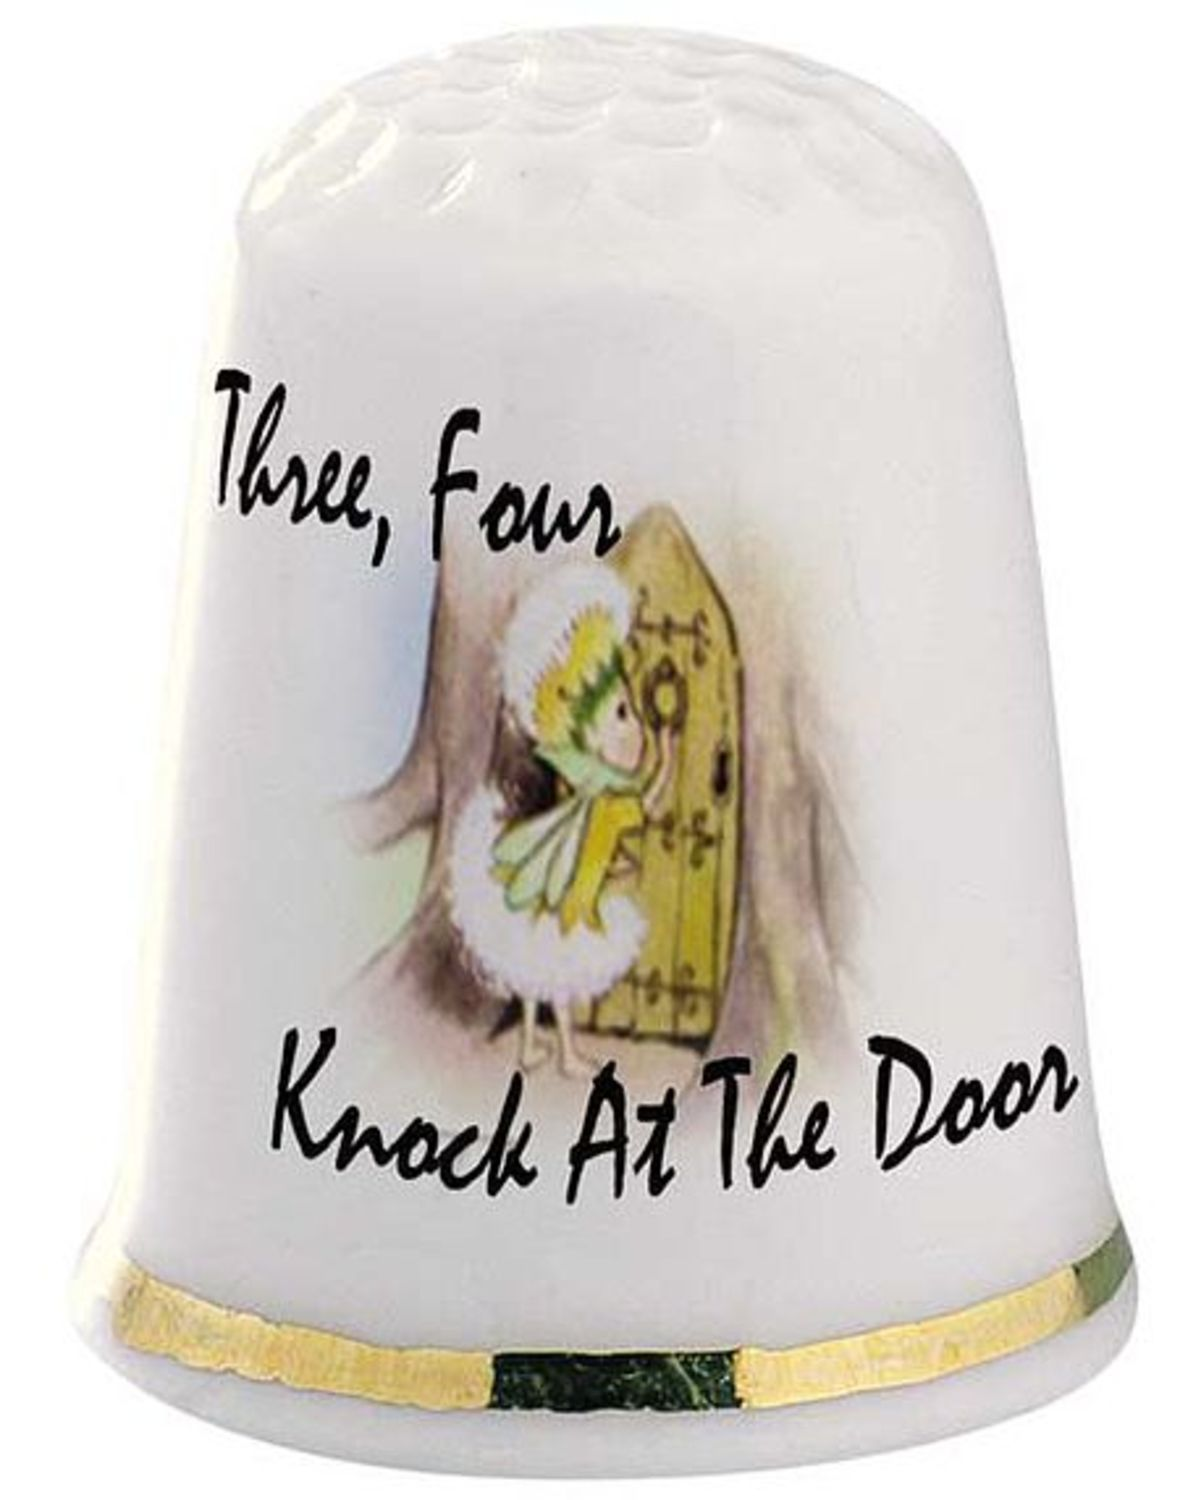 Childrens Classic Nursery Rhyme Thimble - Three Four Knock At The Door  sc 1 st  The Thimble Guild & Childrens Classic Nursery Rhyme Thimble - Three Four Knock At The Door